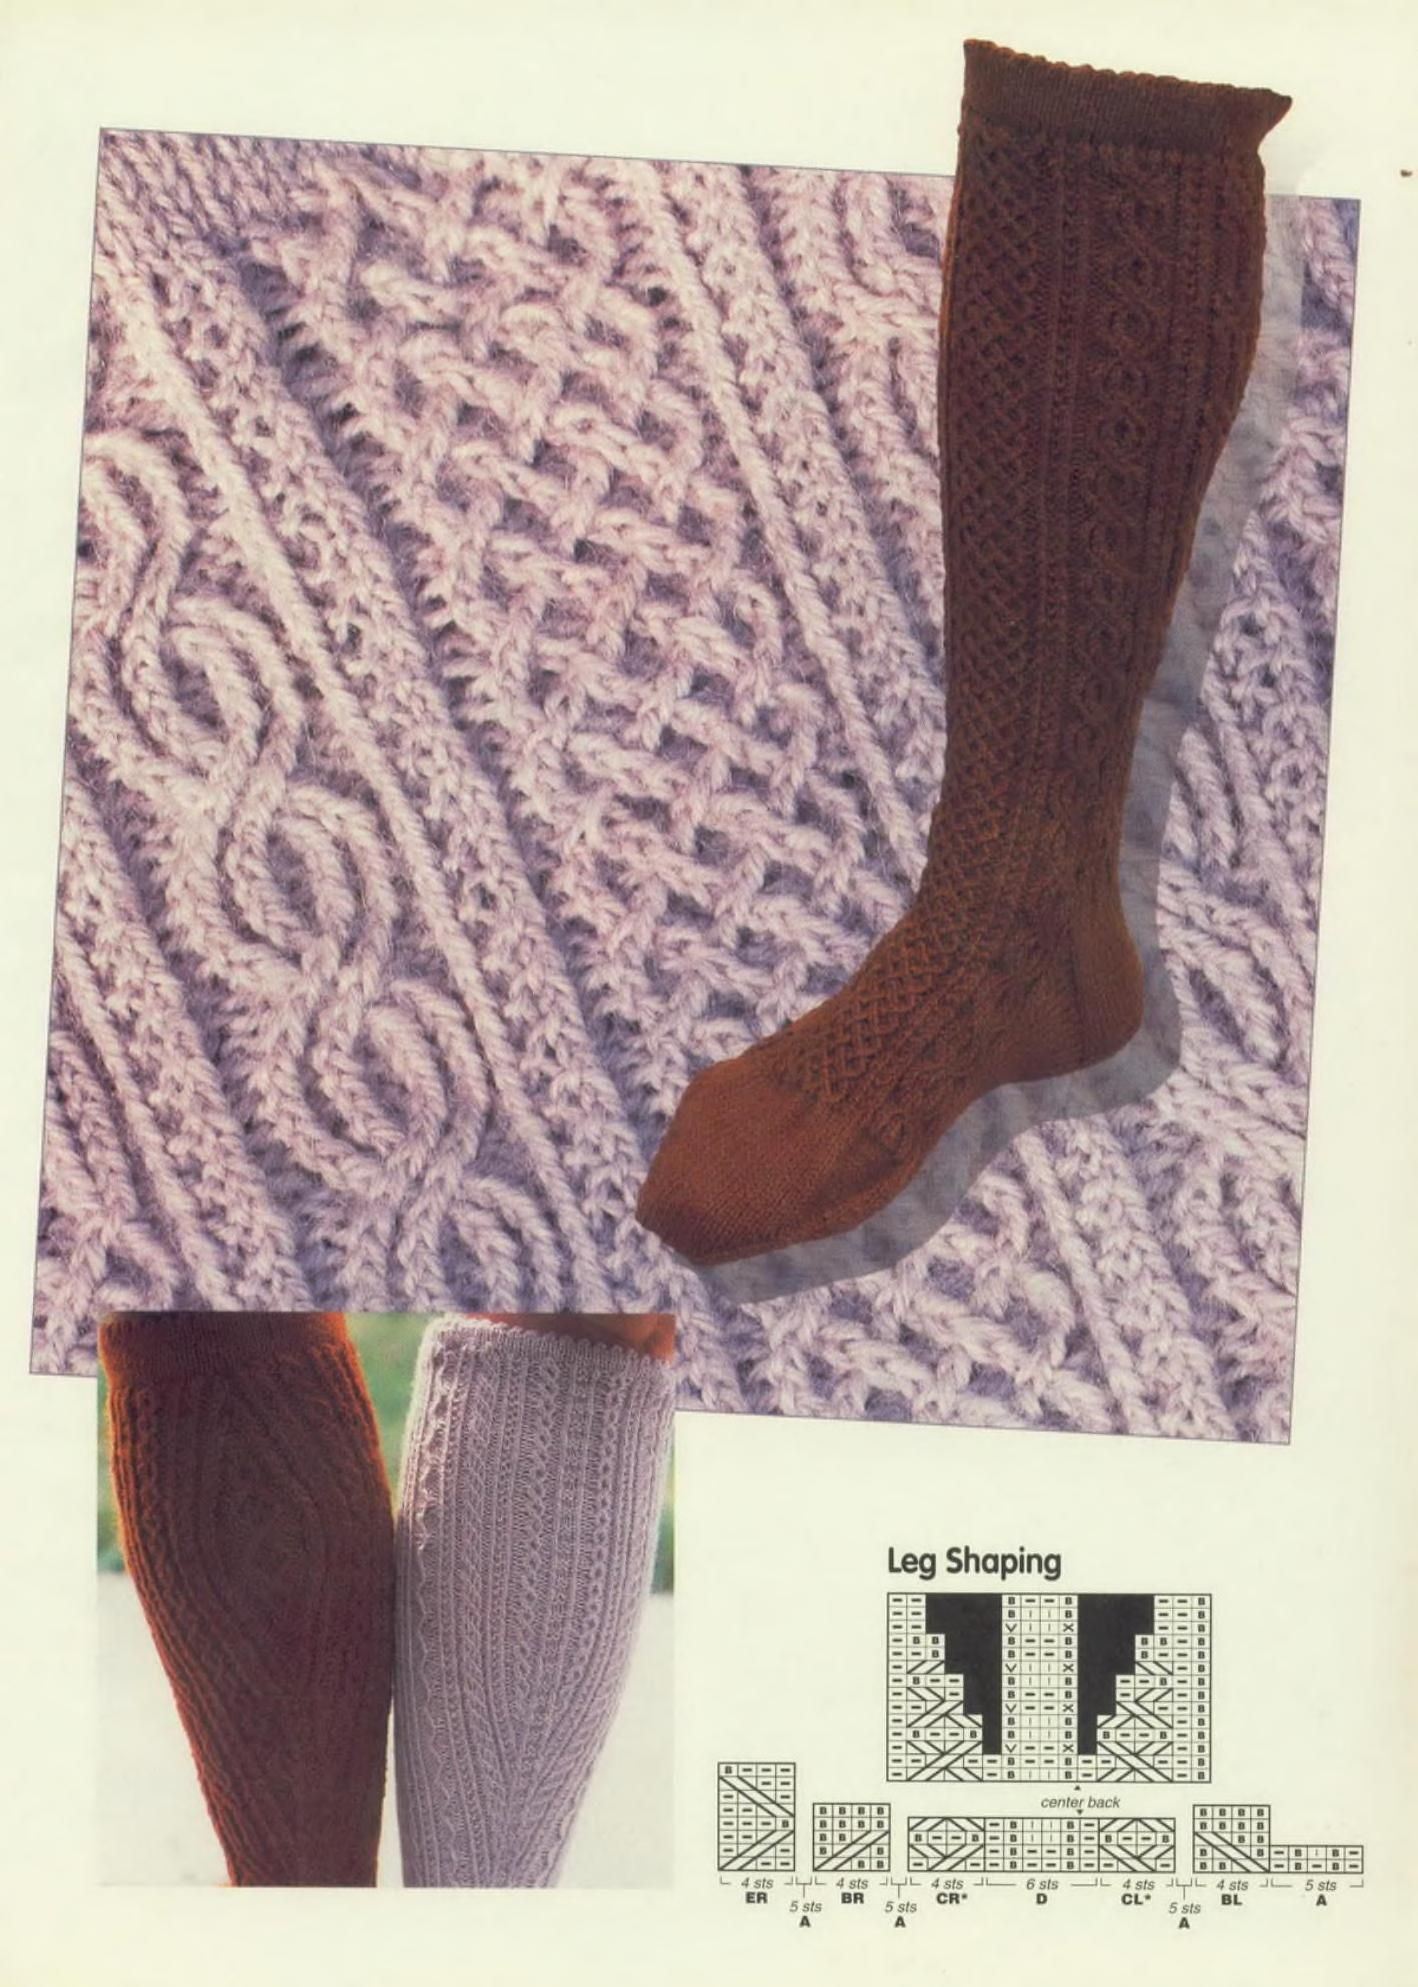 Knitters 24 1991 09 Free Download Borrow And Streaming Internet Archive Internet Archive The Borrowers Knitters